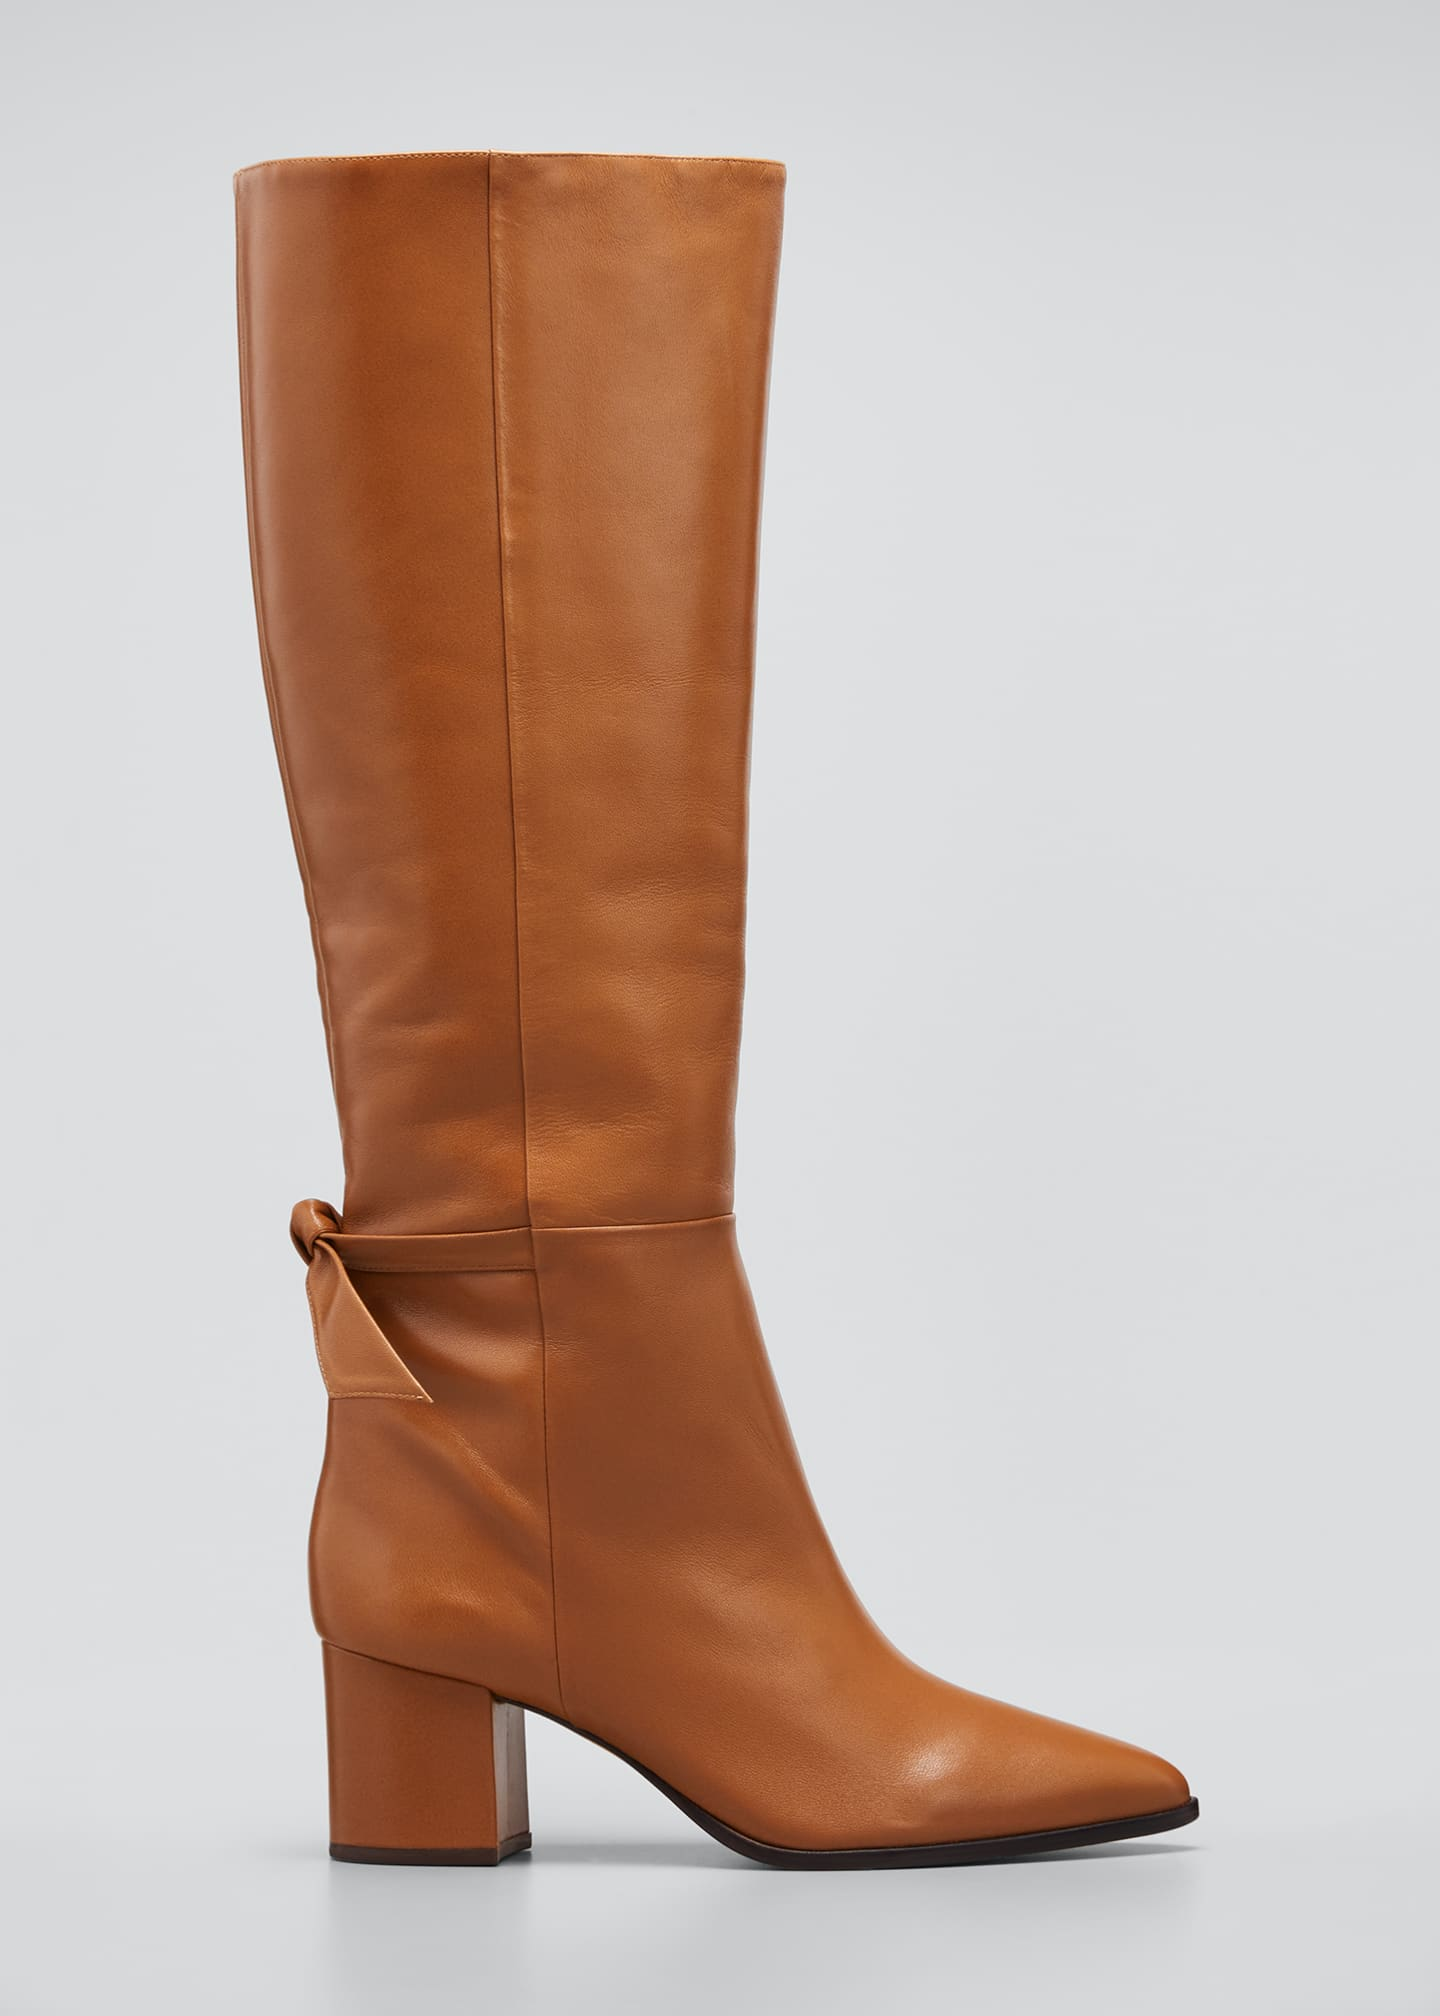 Image 1 of 5: Clarita Tall Leather Boots